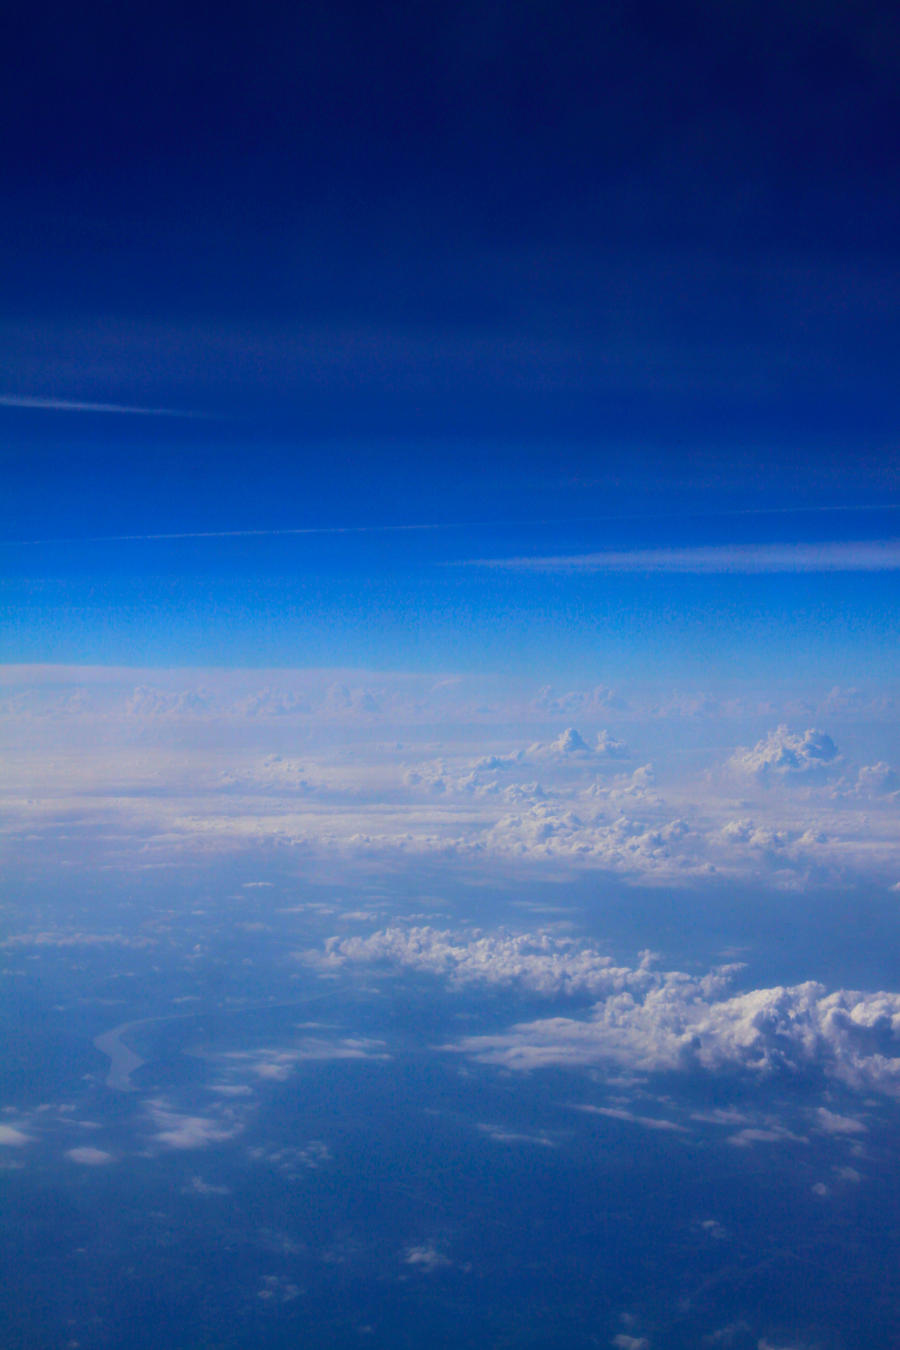 The Horizon Above by FT69